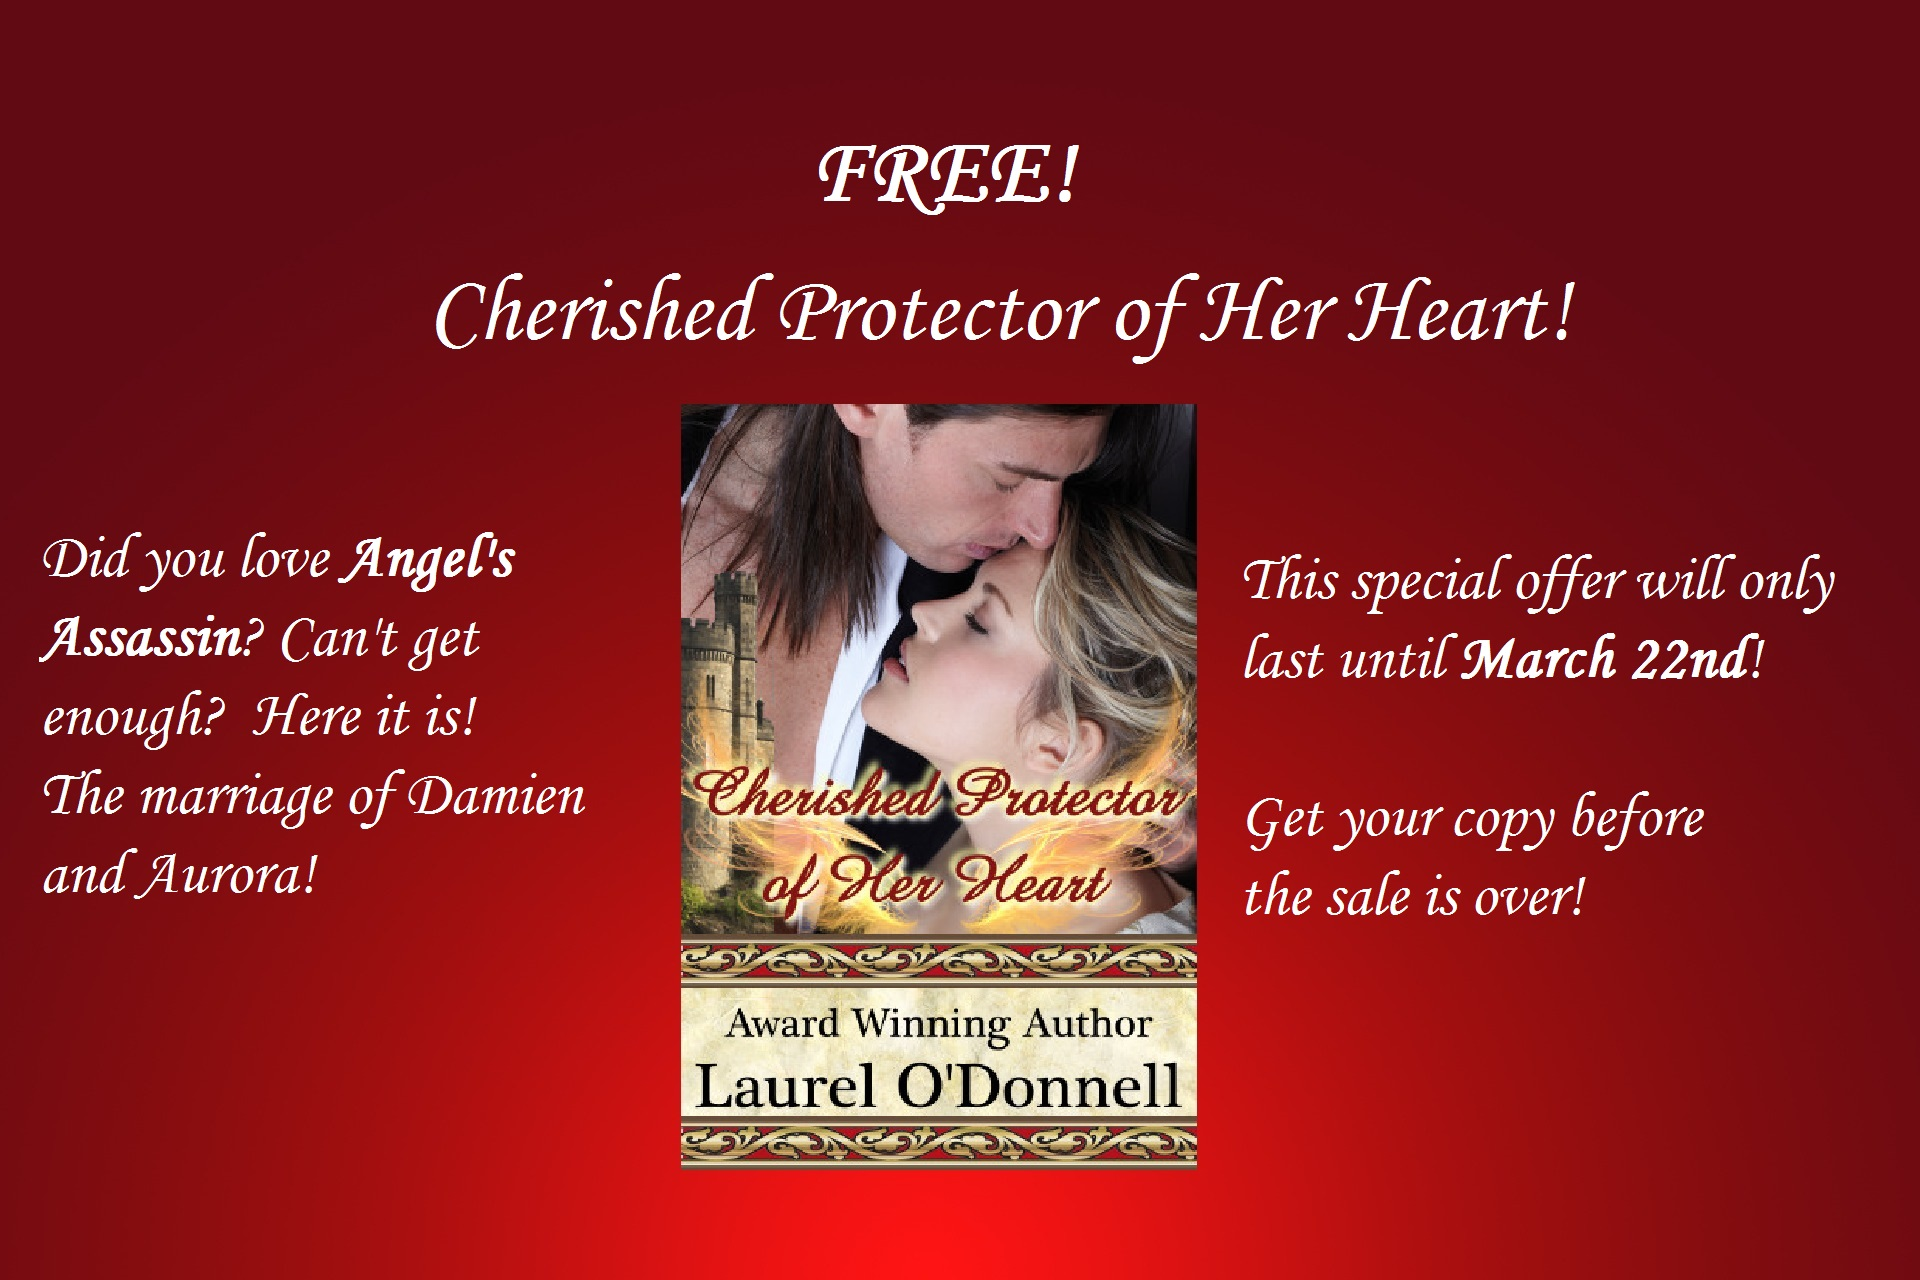 Cherished Protector sale